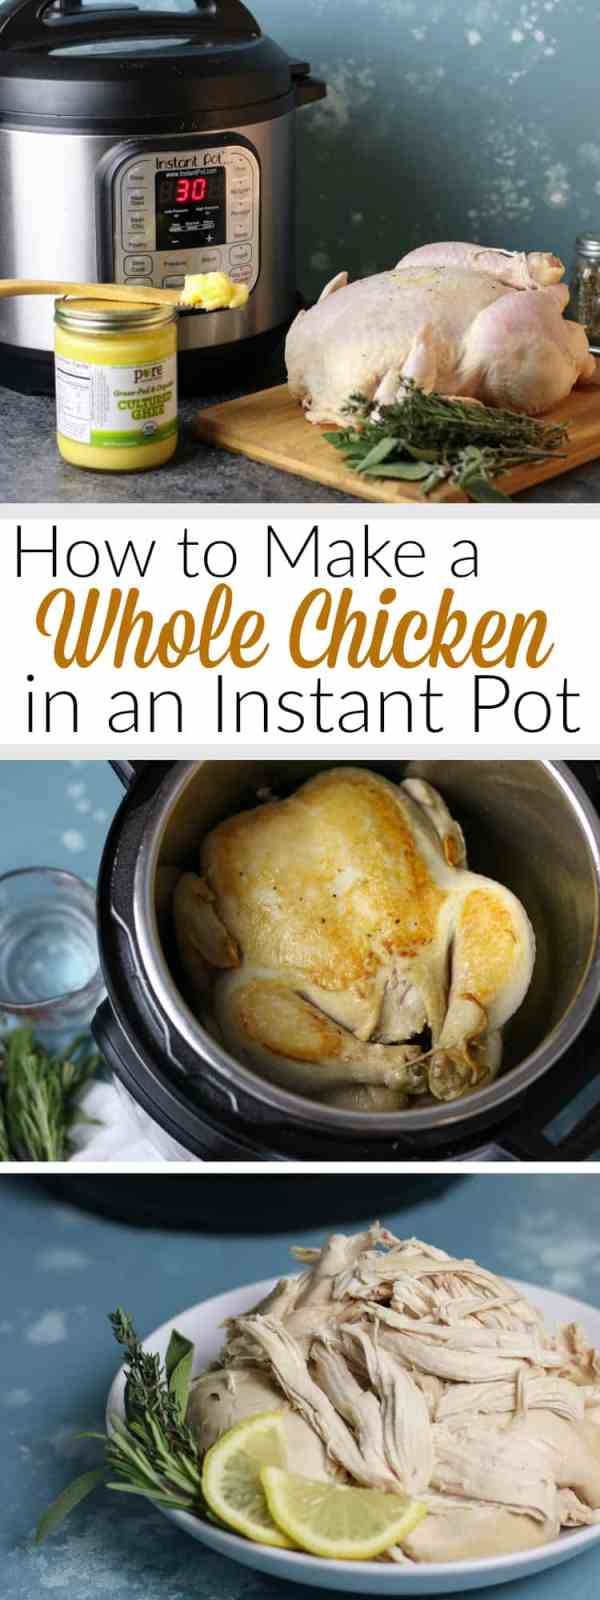 How to make a Whole Chicken in an Instant Pot | therealfoodrds.com